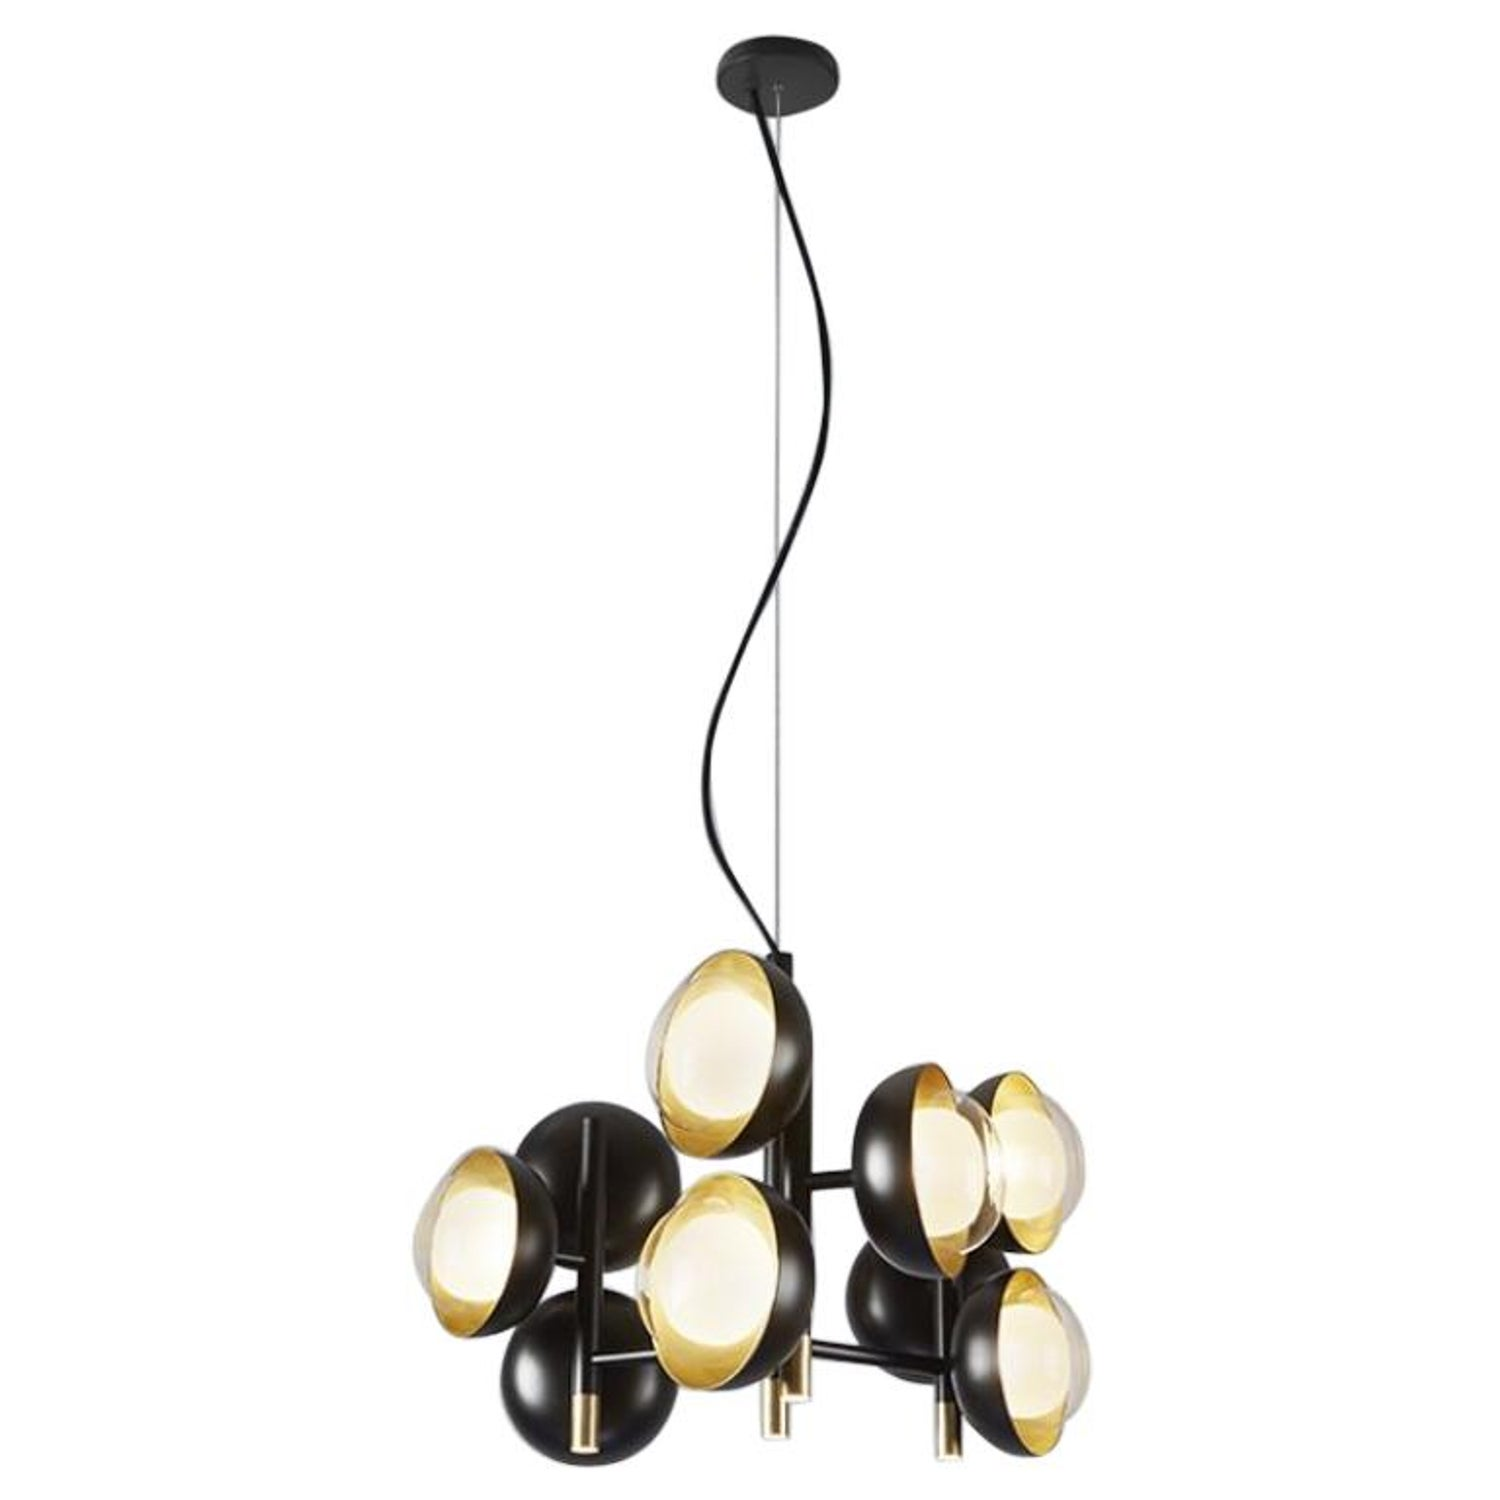 Muse neo vintage style metal chandelier with double sided glass diffuser for sale at 1stdibs